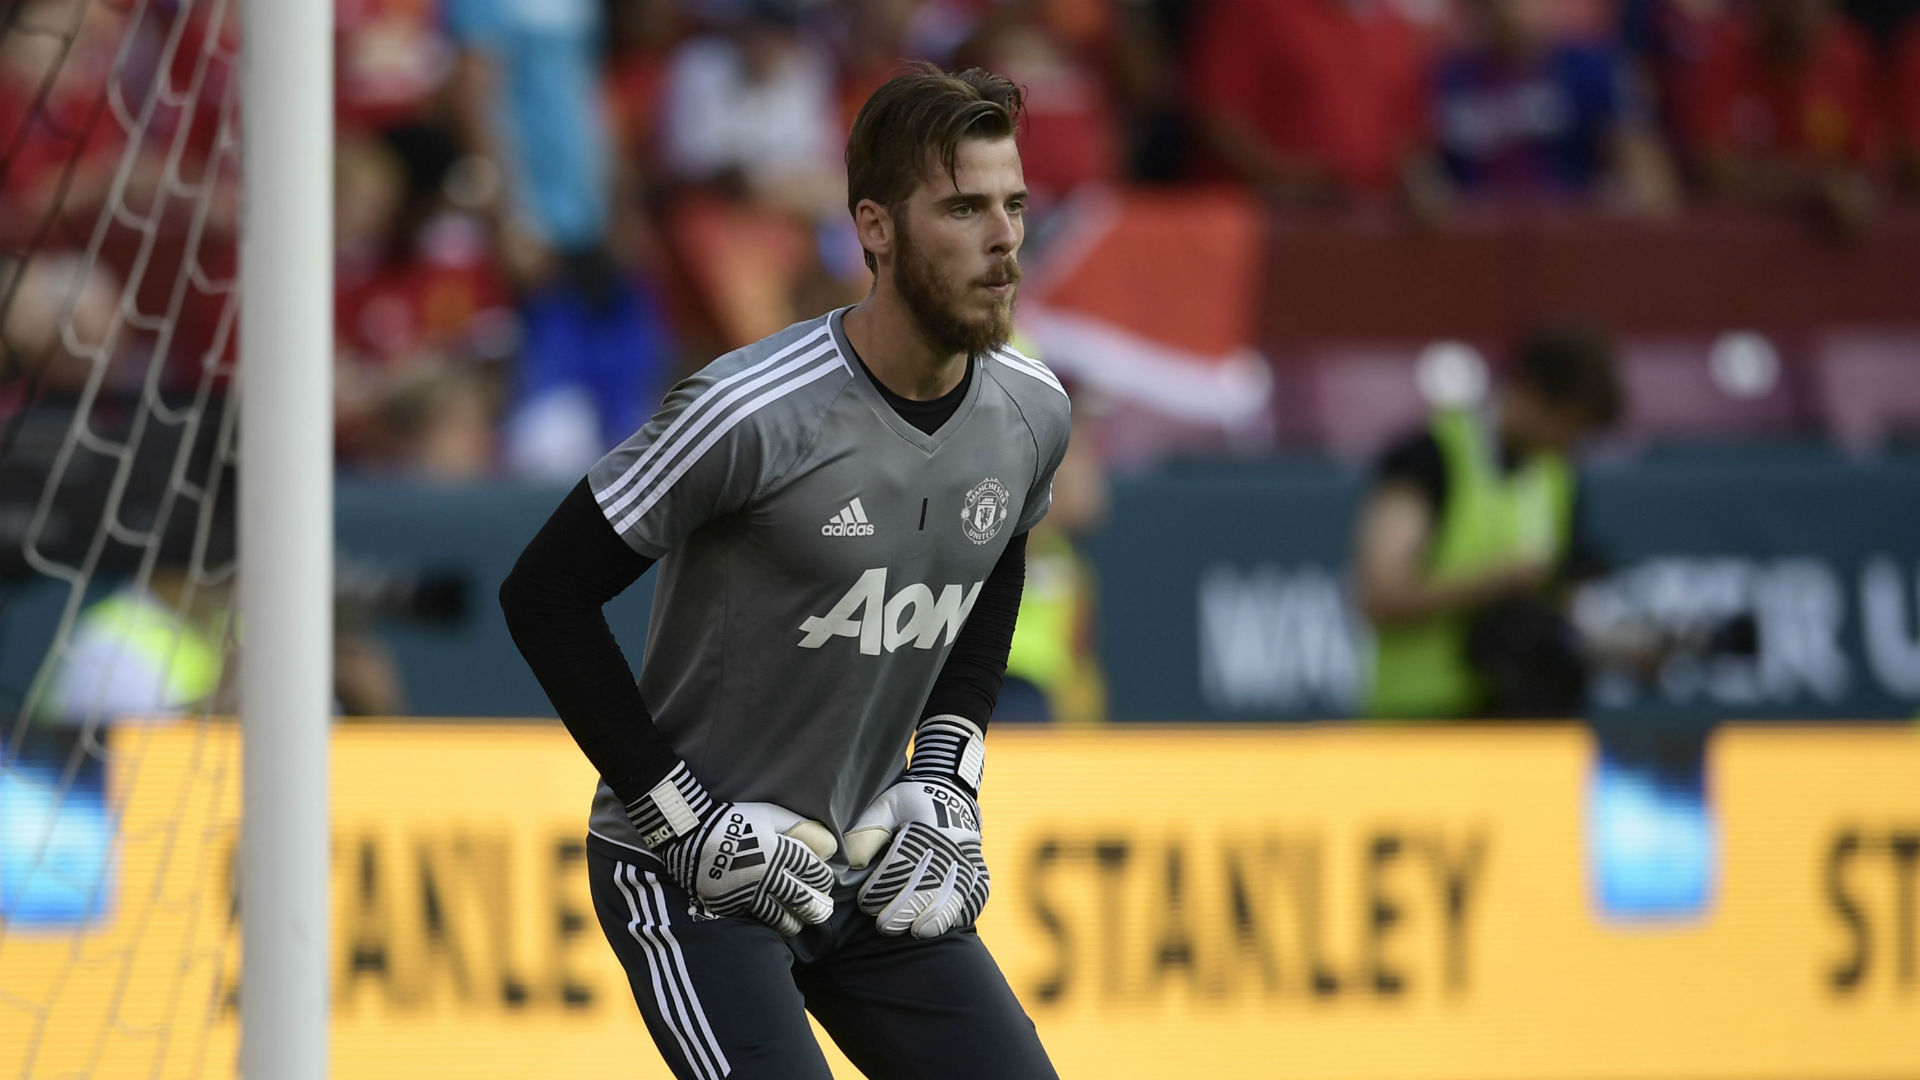 HD David de Gea Manchester United ICC